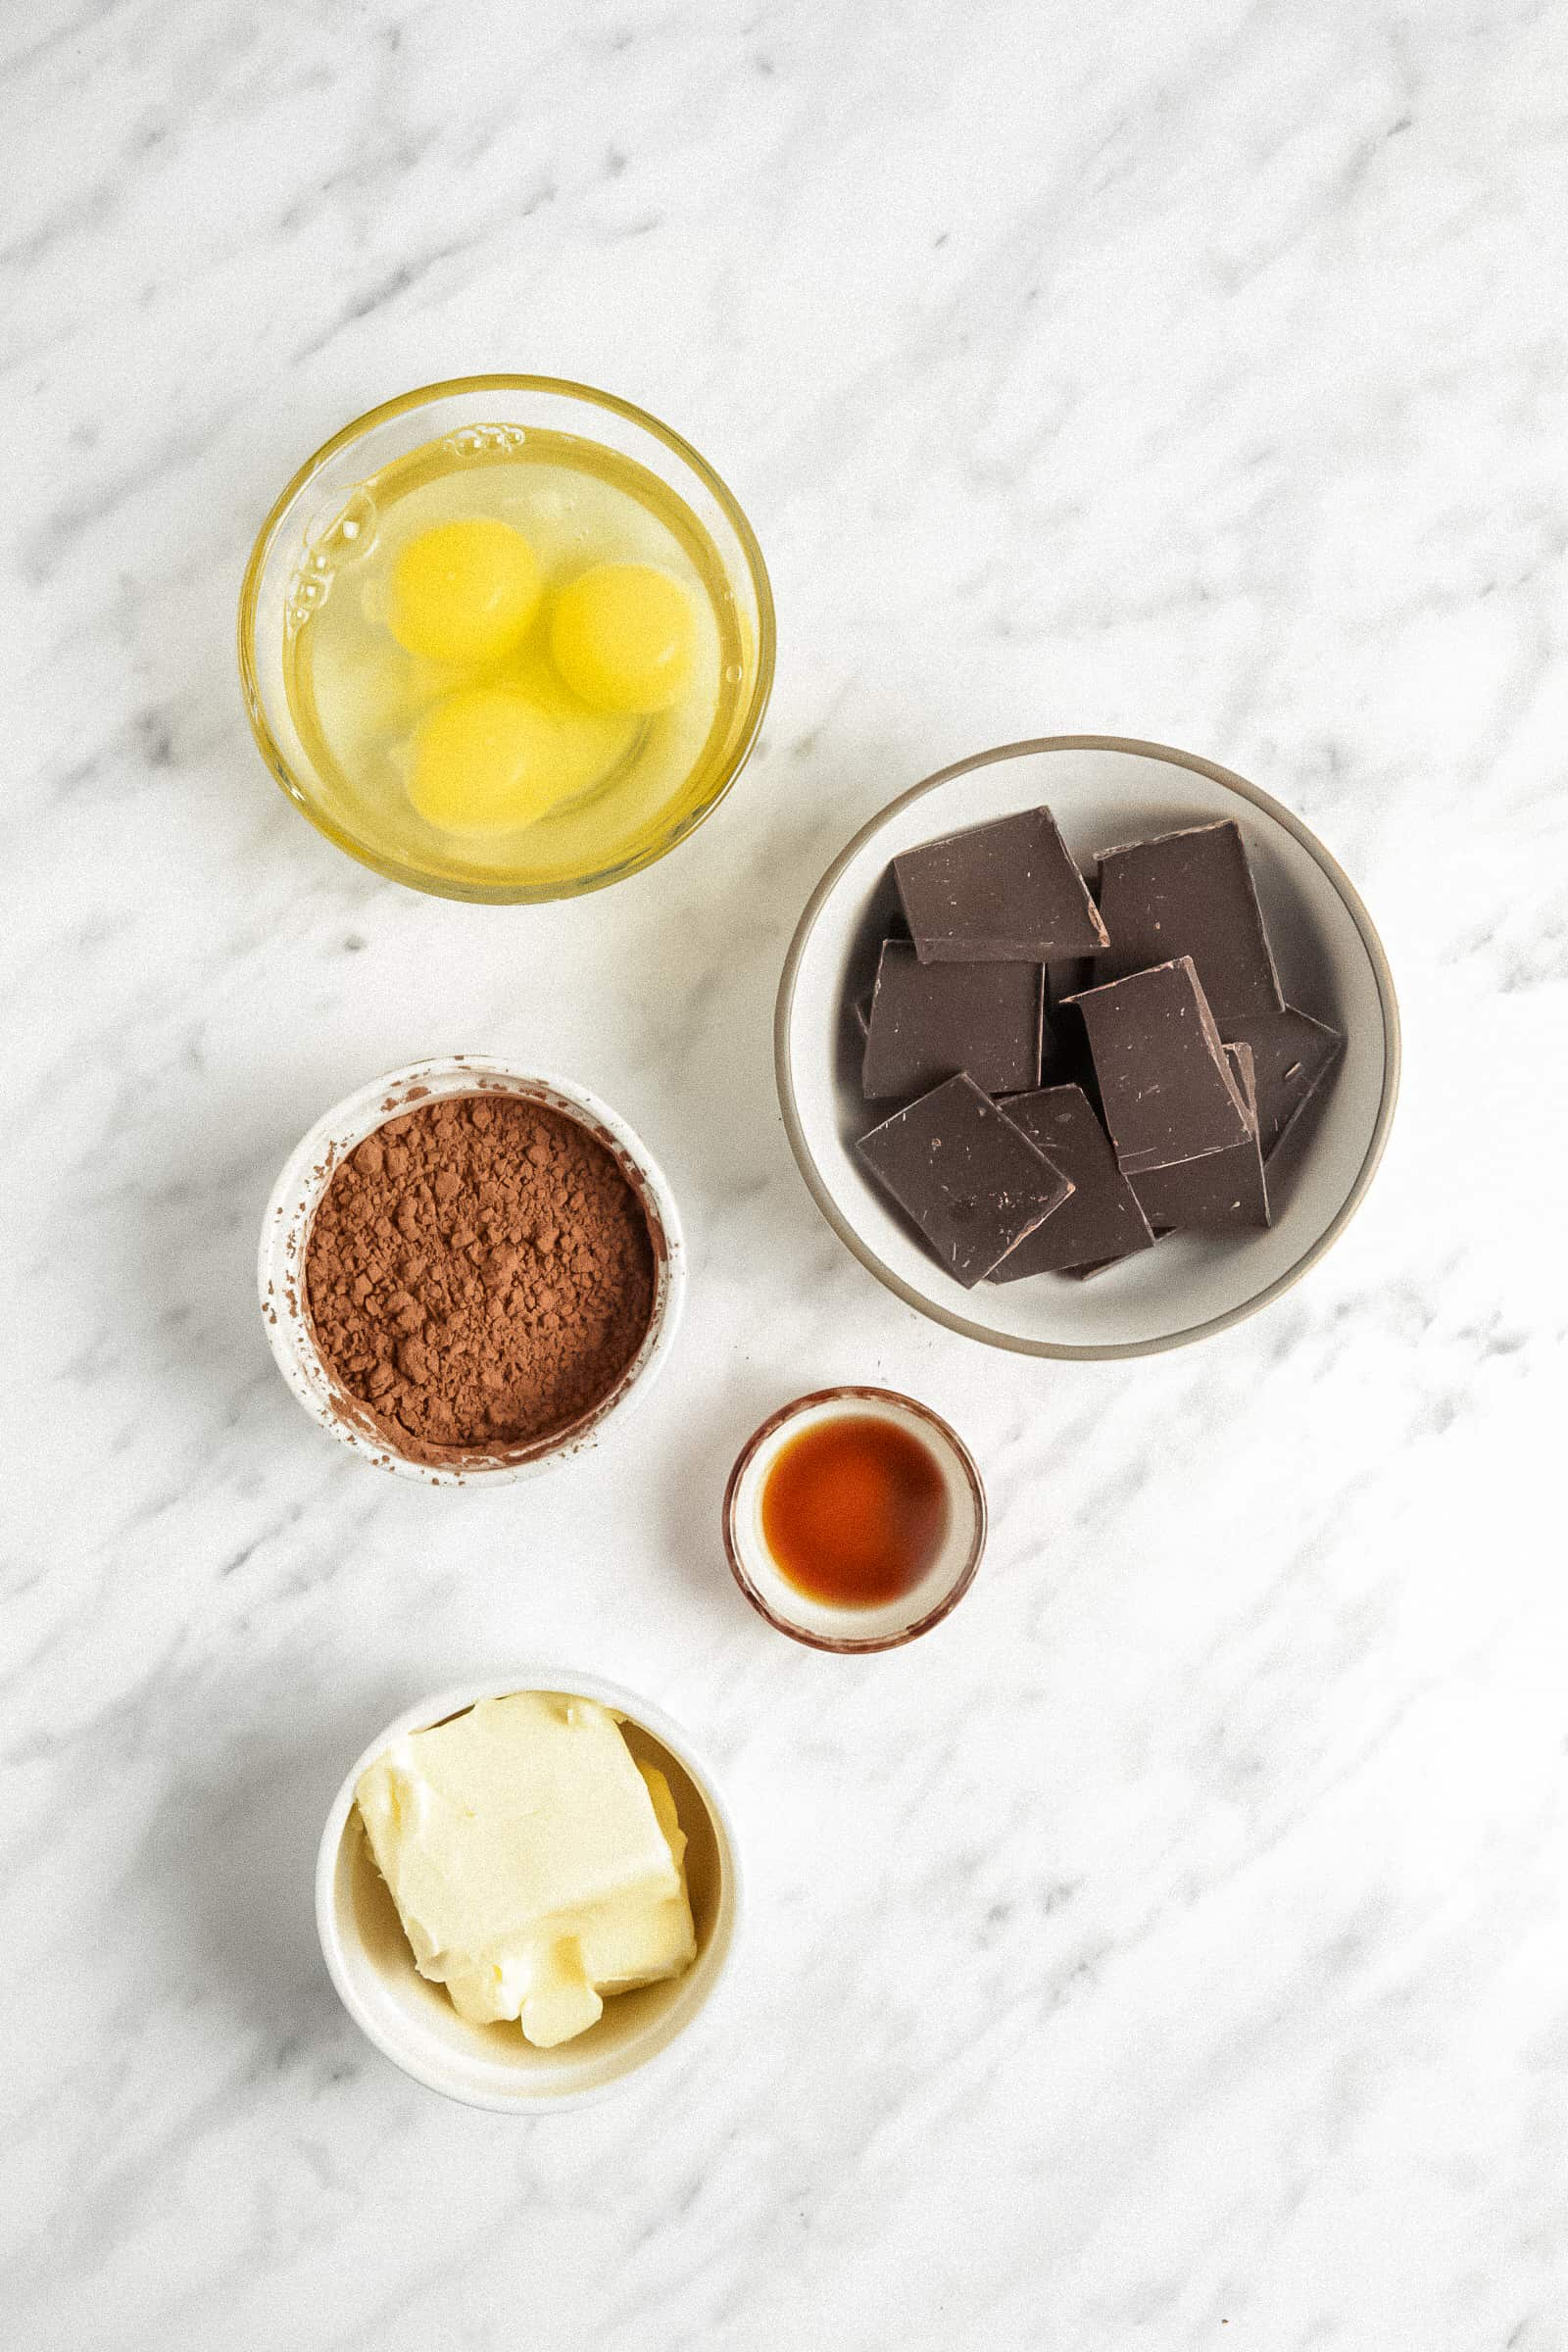 ingredients for flourless chocolate cake prepped in small bowls